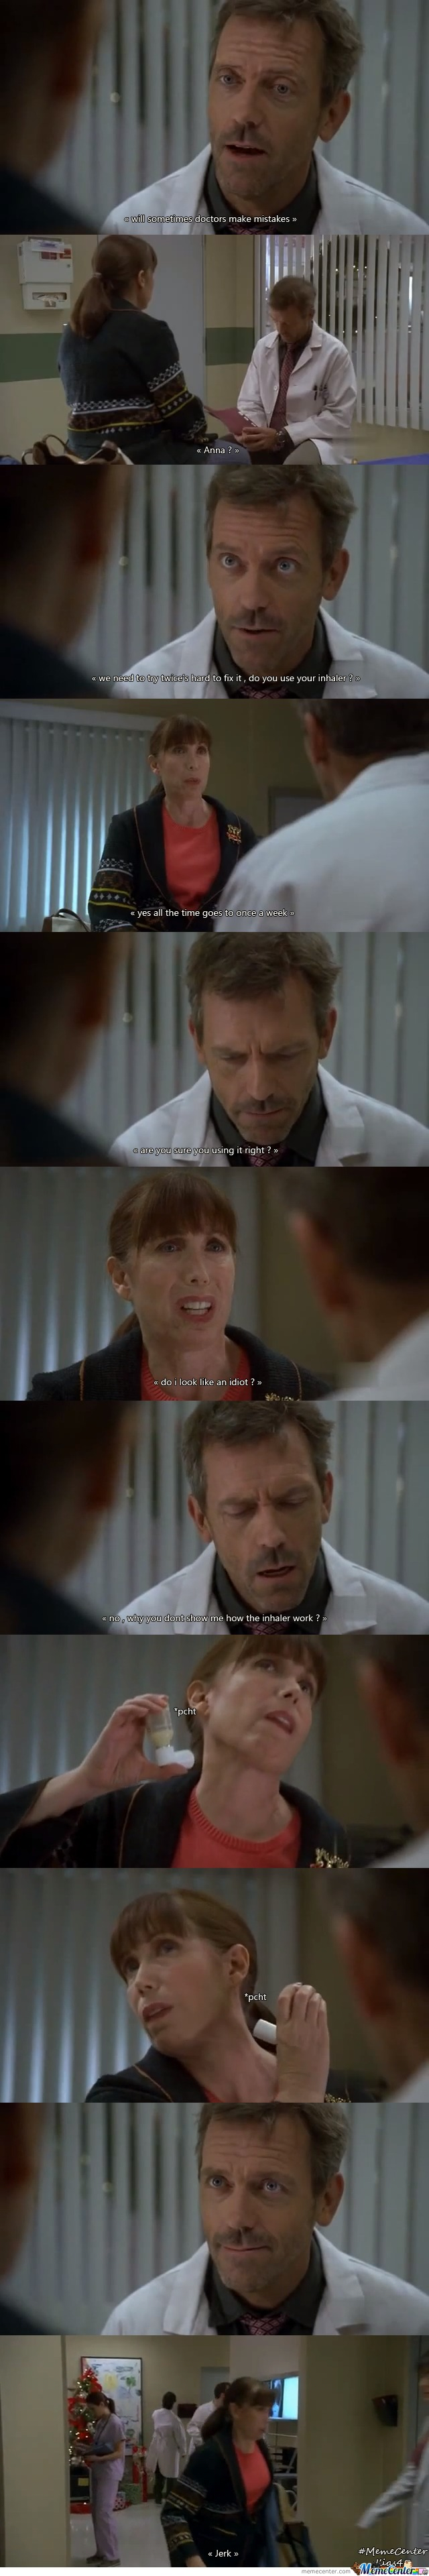 Just House